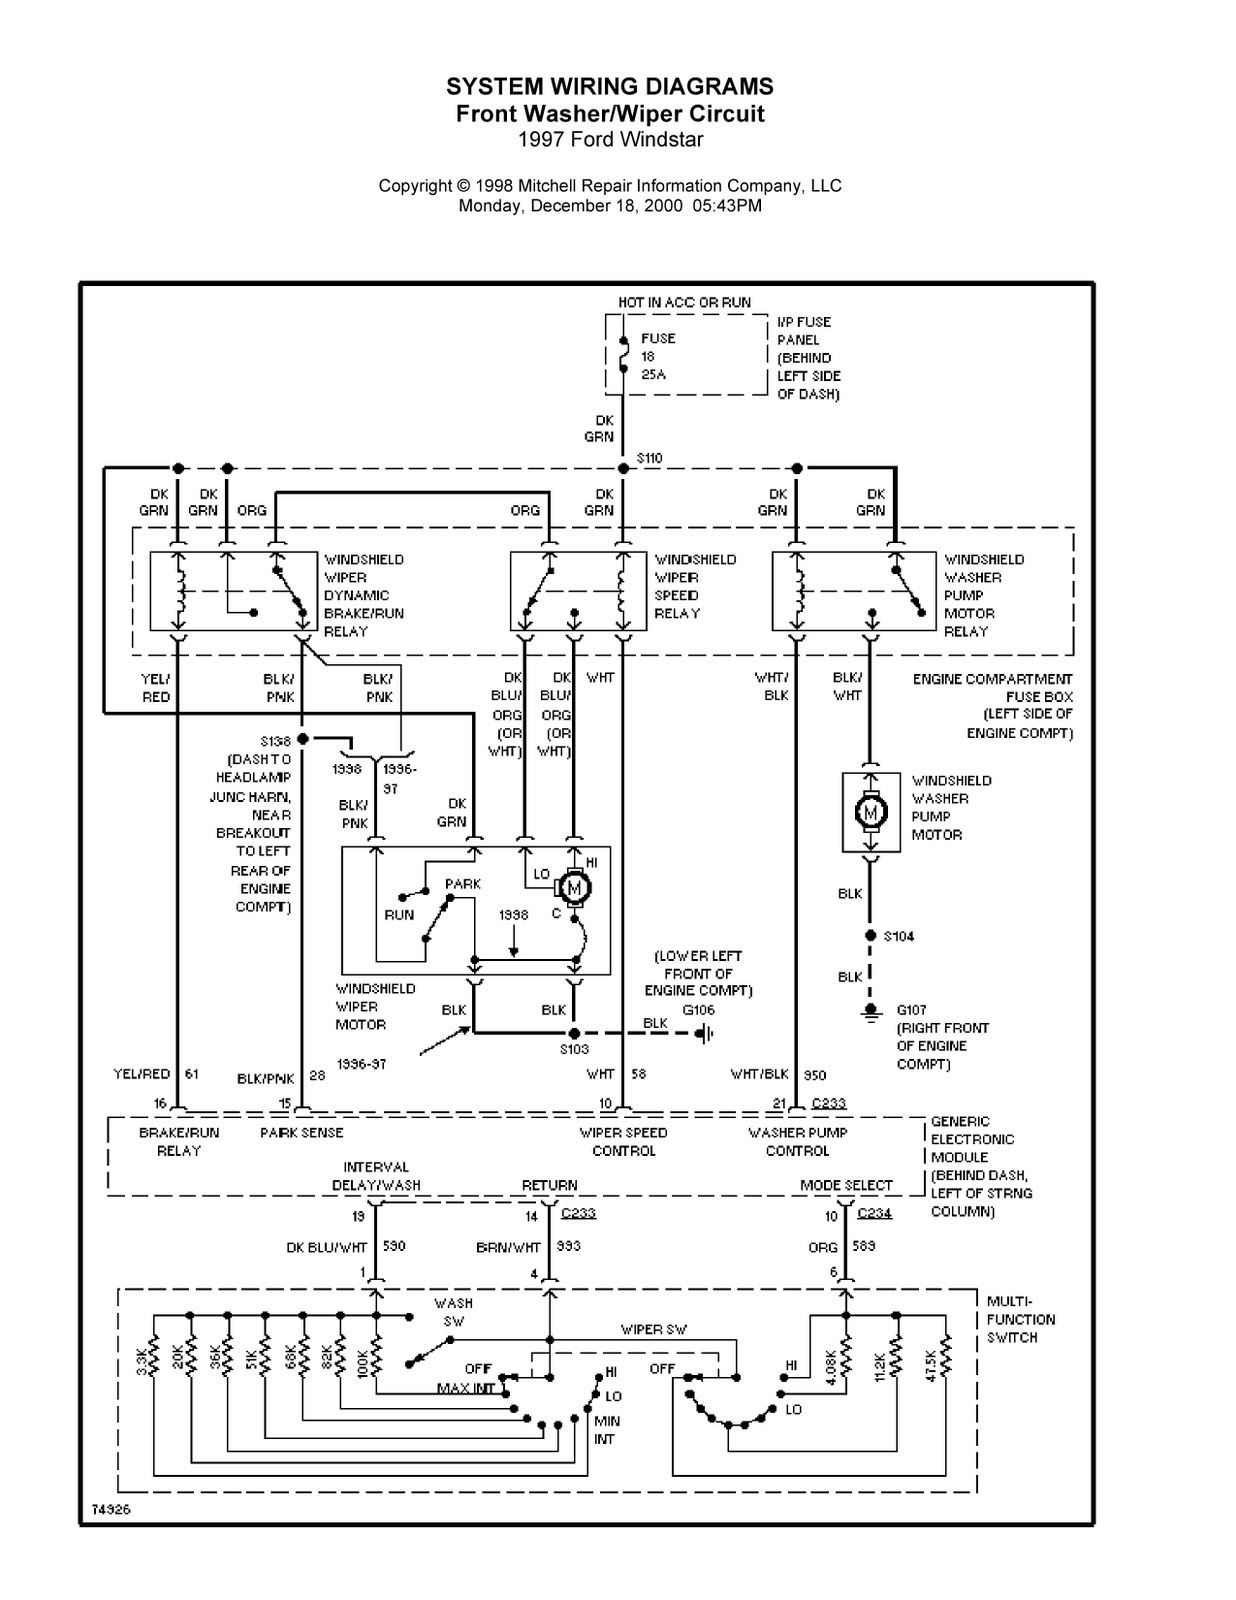 0051 1997 ford windstar complete system wiring diagrams wiring 2002 Windstar Interior Diagram at et-consult.org